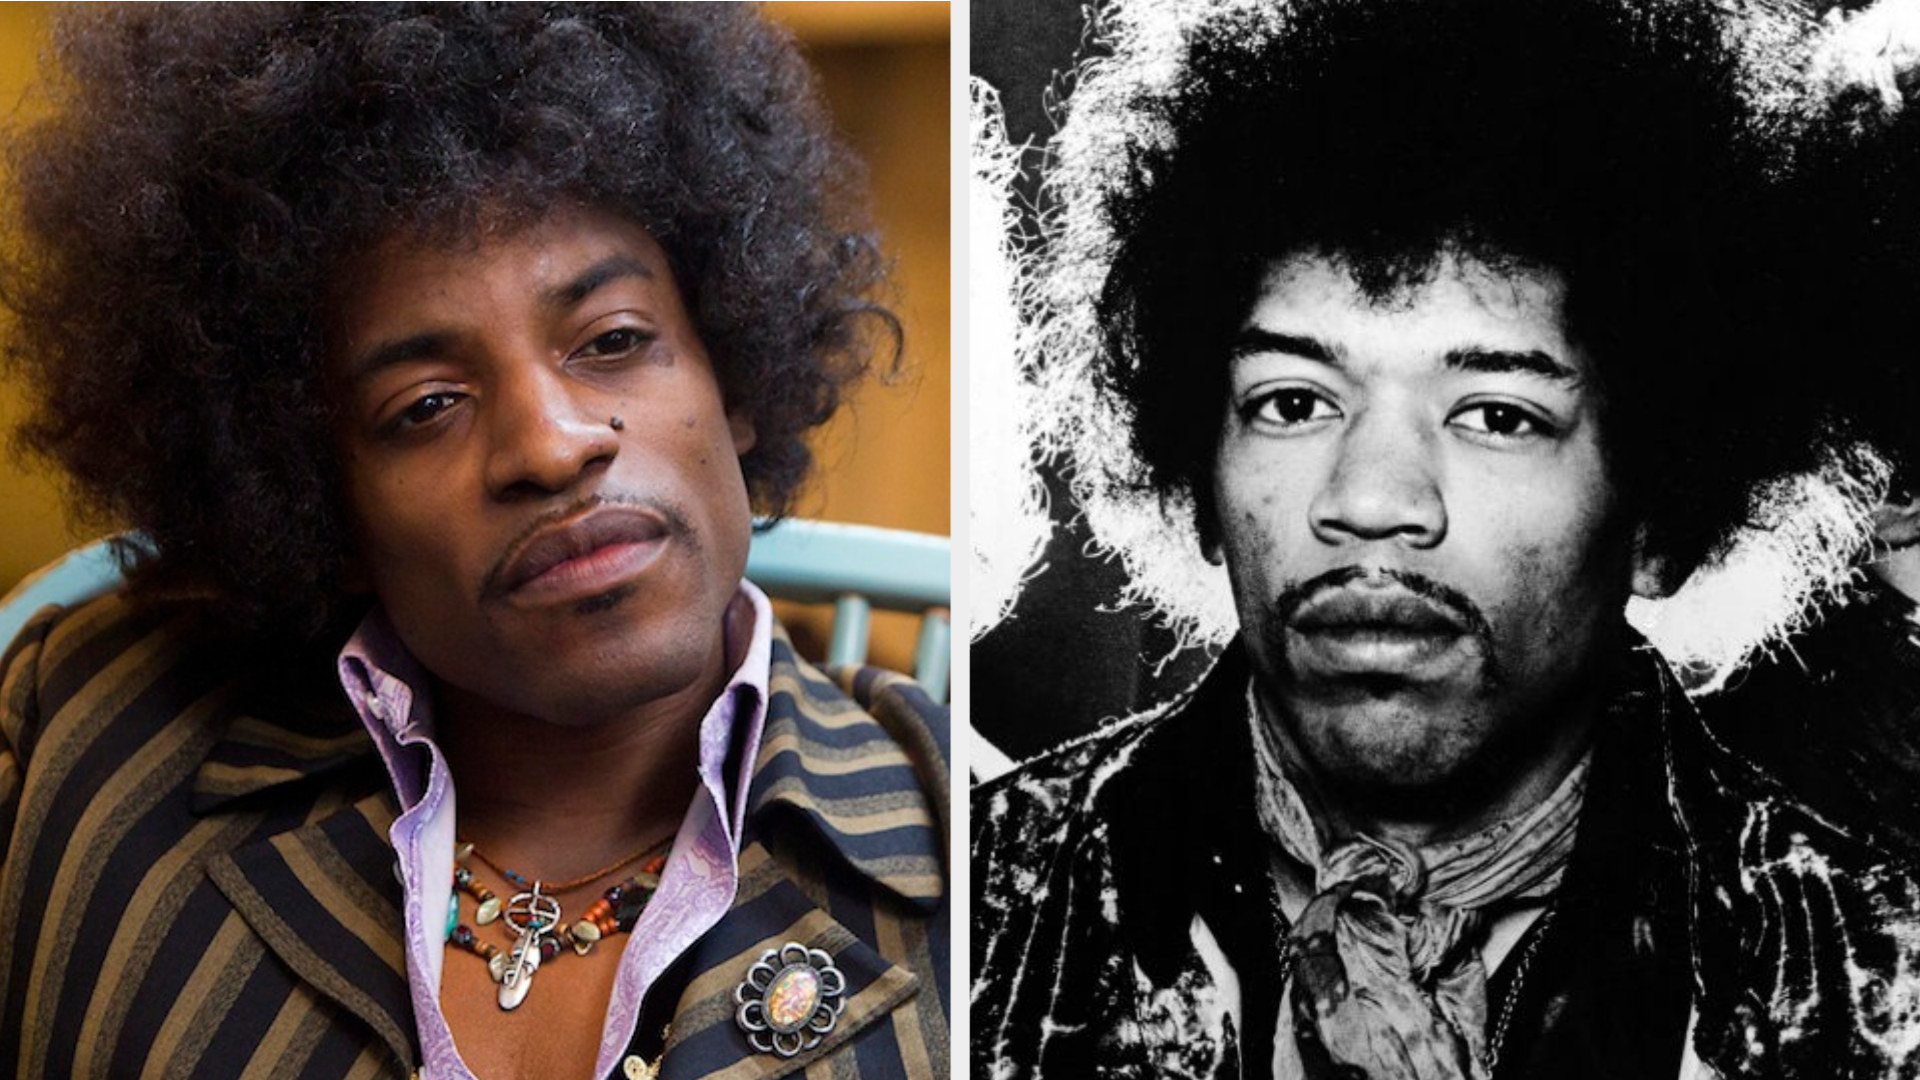 André 3000 as Jimi Hendrix, staring at someone with great concentration, wearing a psychedelic suit and messy hair; Jimi Hendrix posing for a band photo from the late '60s, serious expression on his face, wearing psychedelic suit and scarf